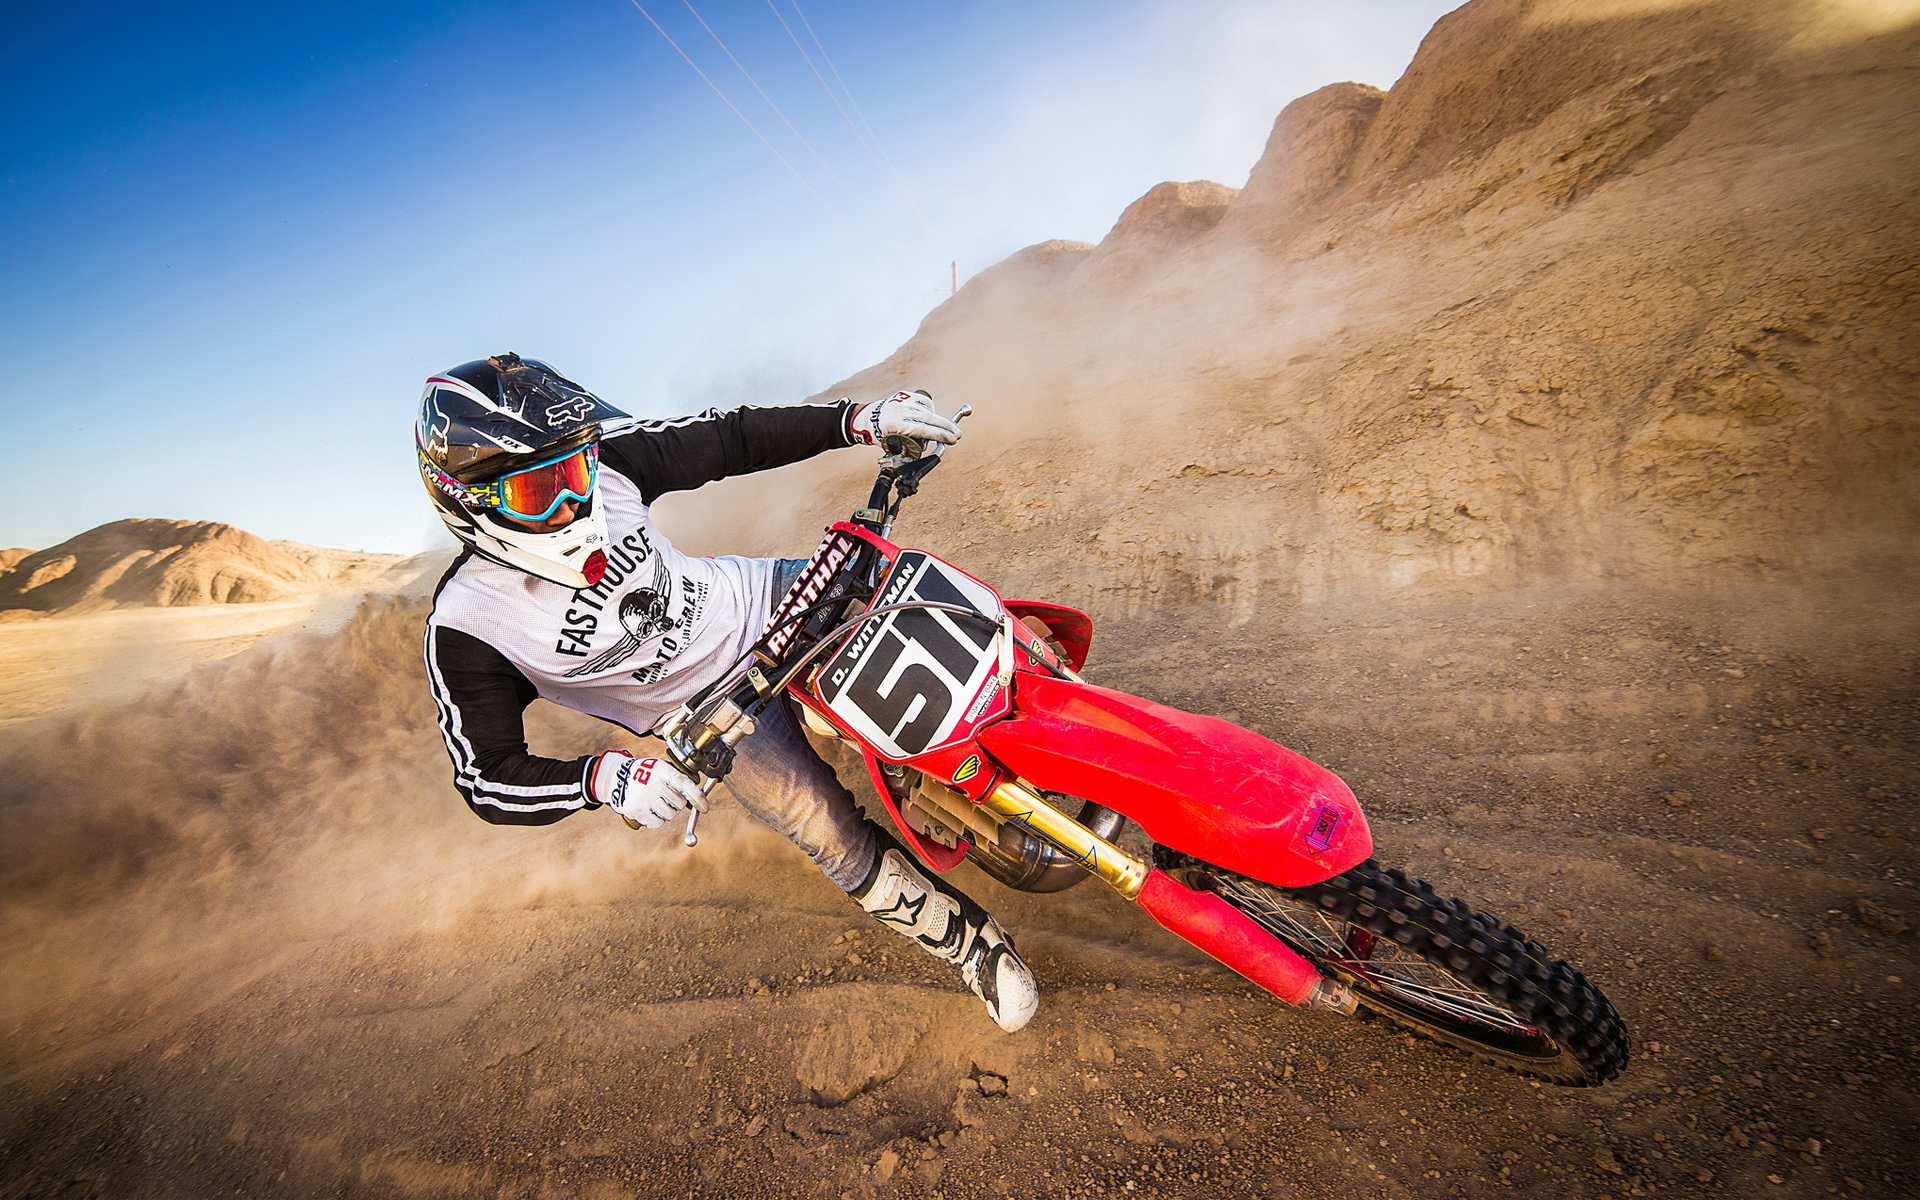 HD Wallpapers Motorcycle Sports